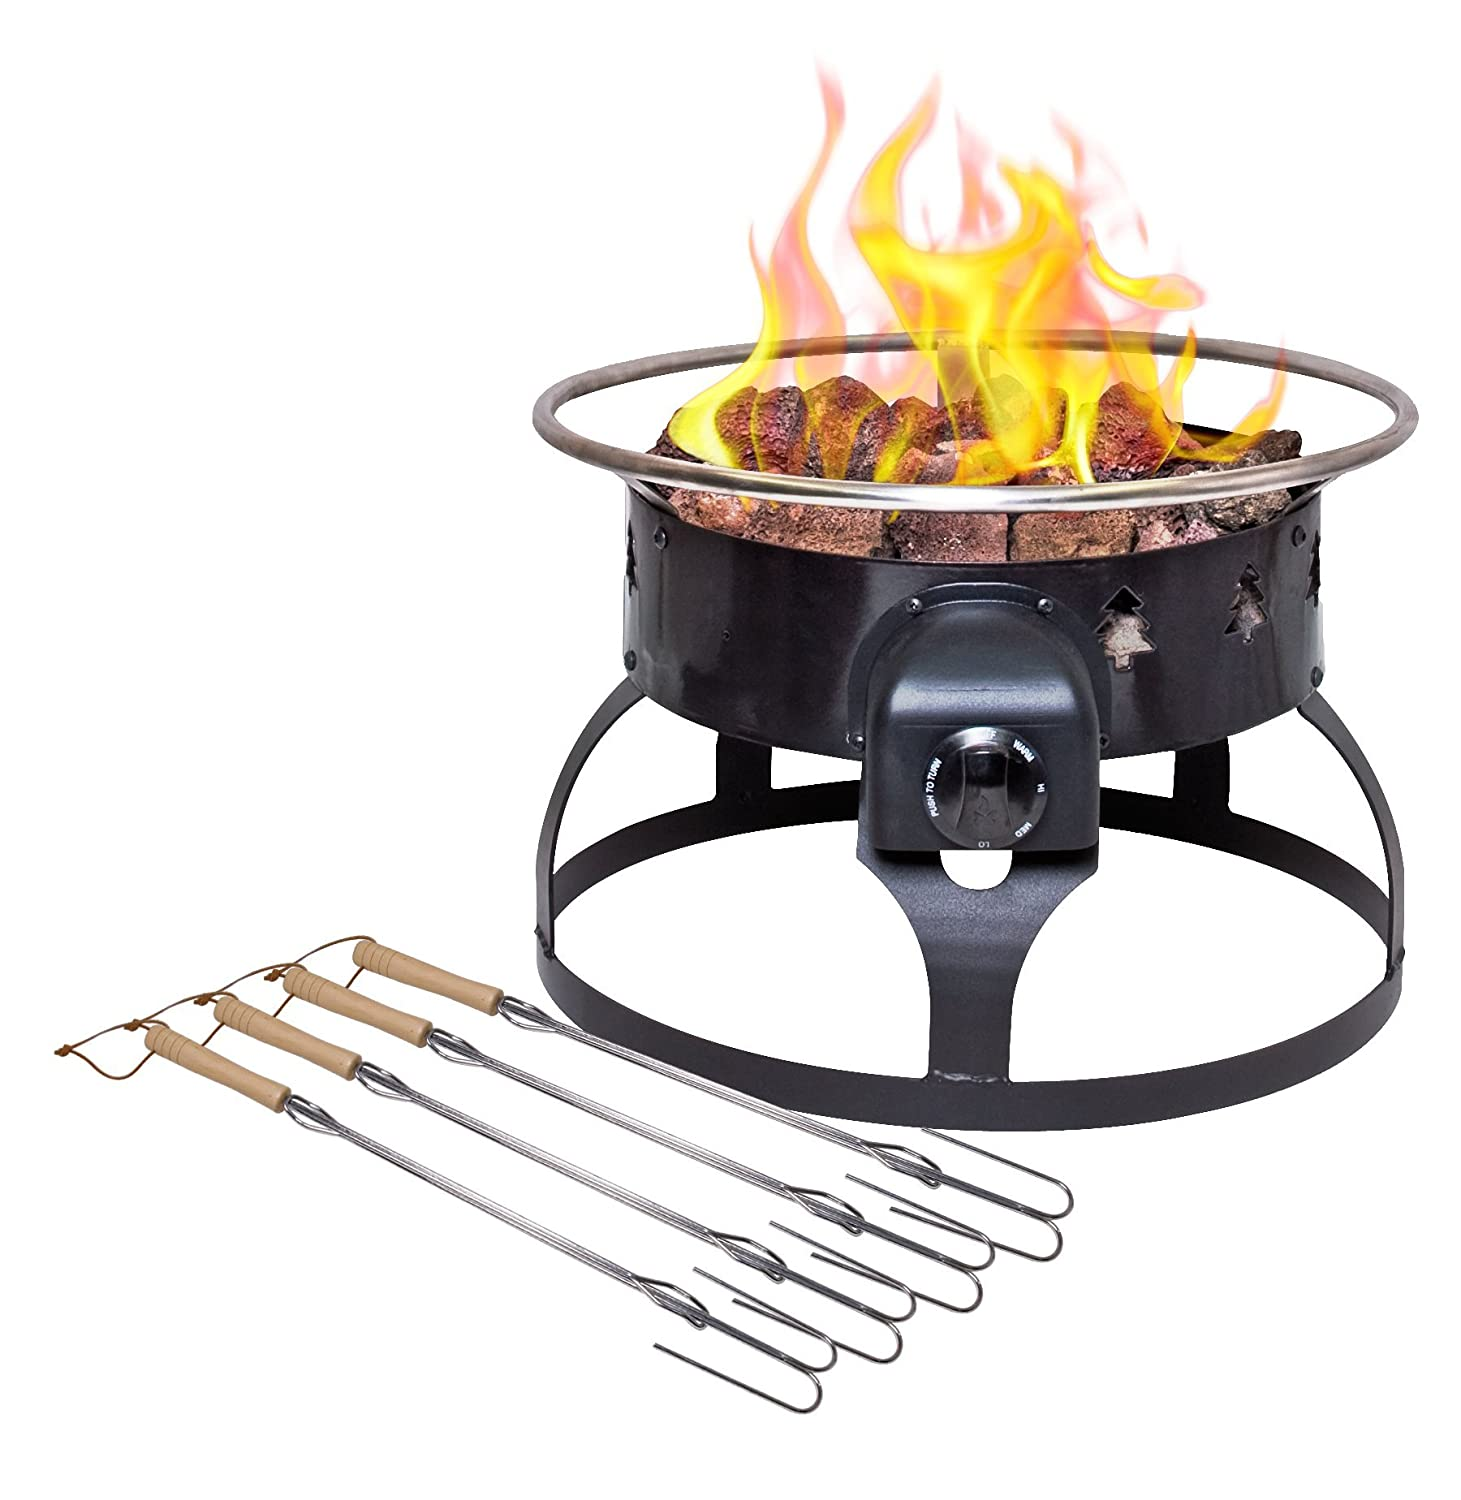 Best Propane Fire Pit 2019 Outdoor Options Reviewed